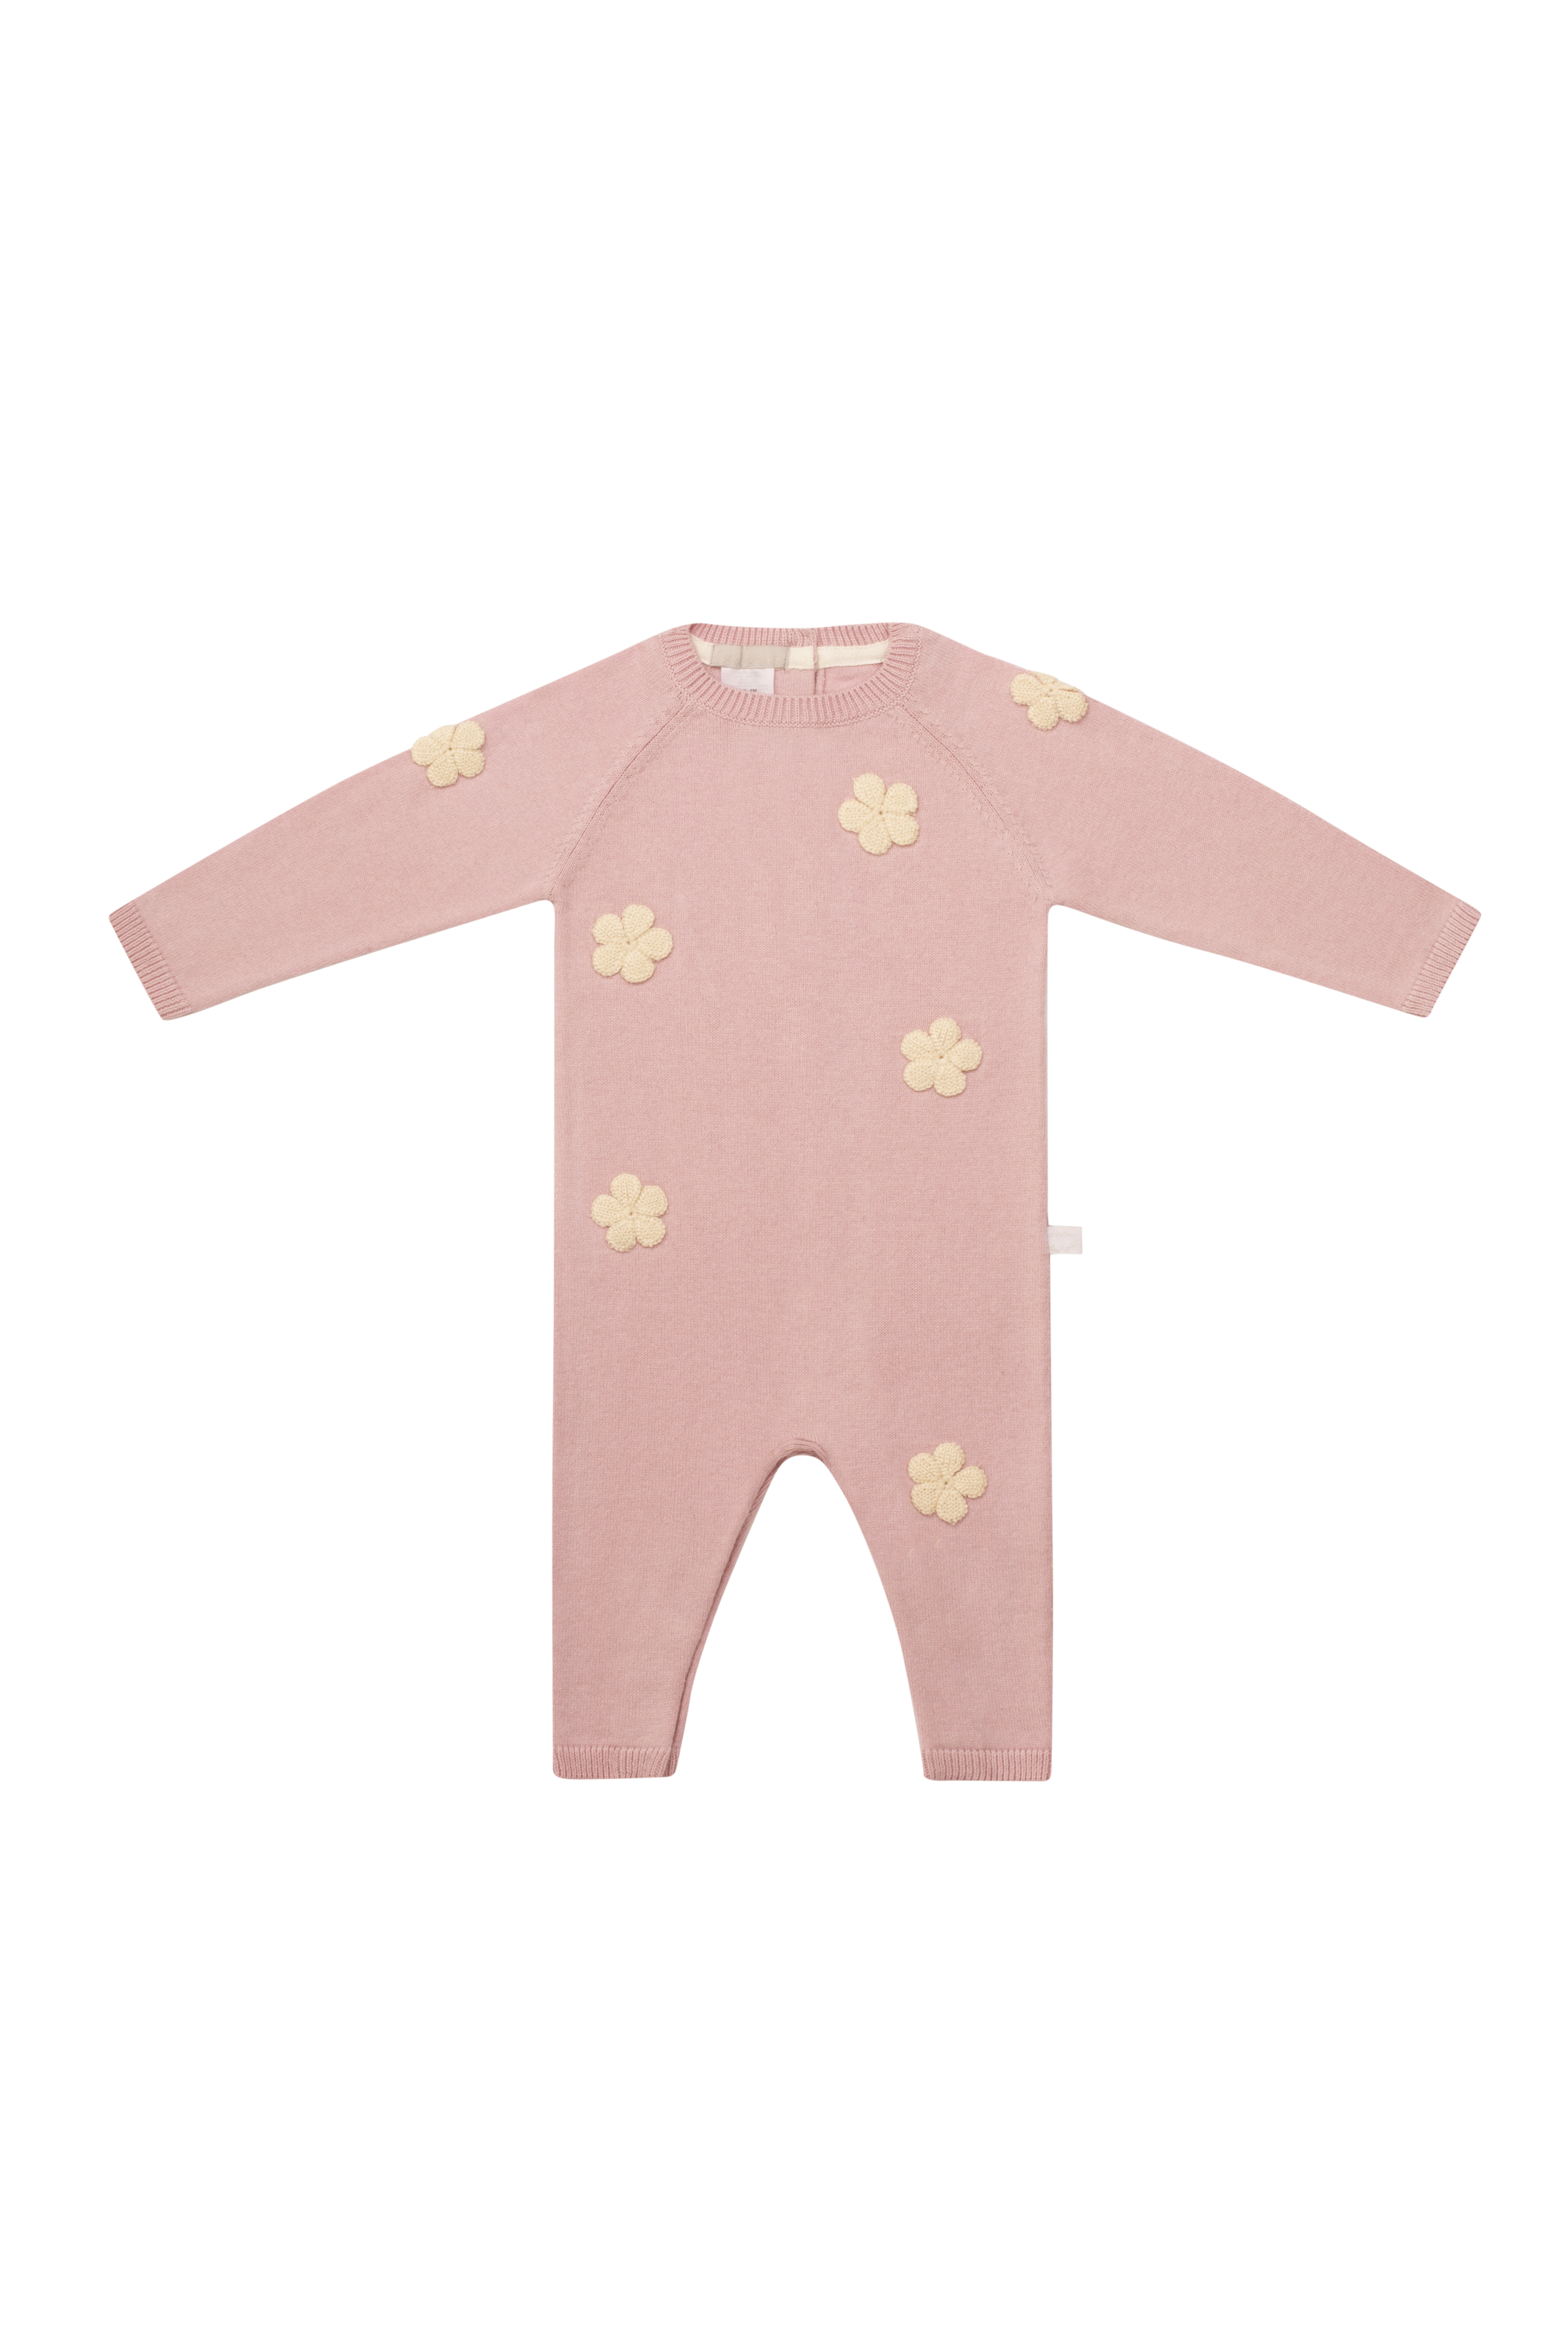 Pocket Full Of Posies Romper by Arc de Noa on curated-crowd.com